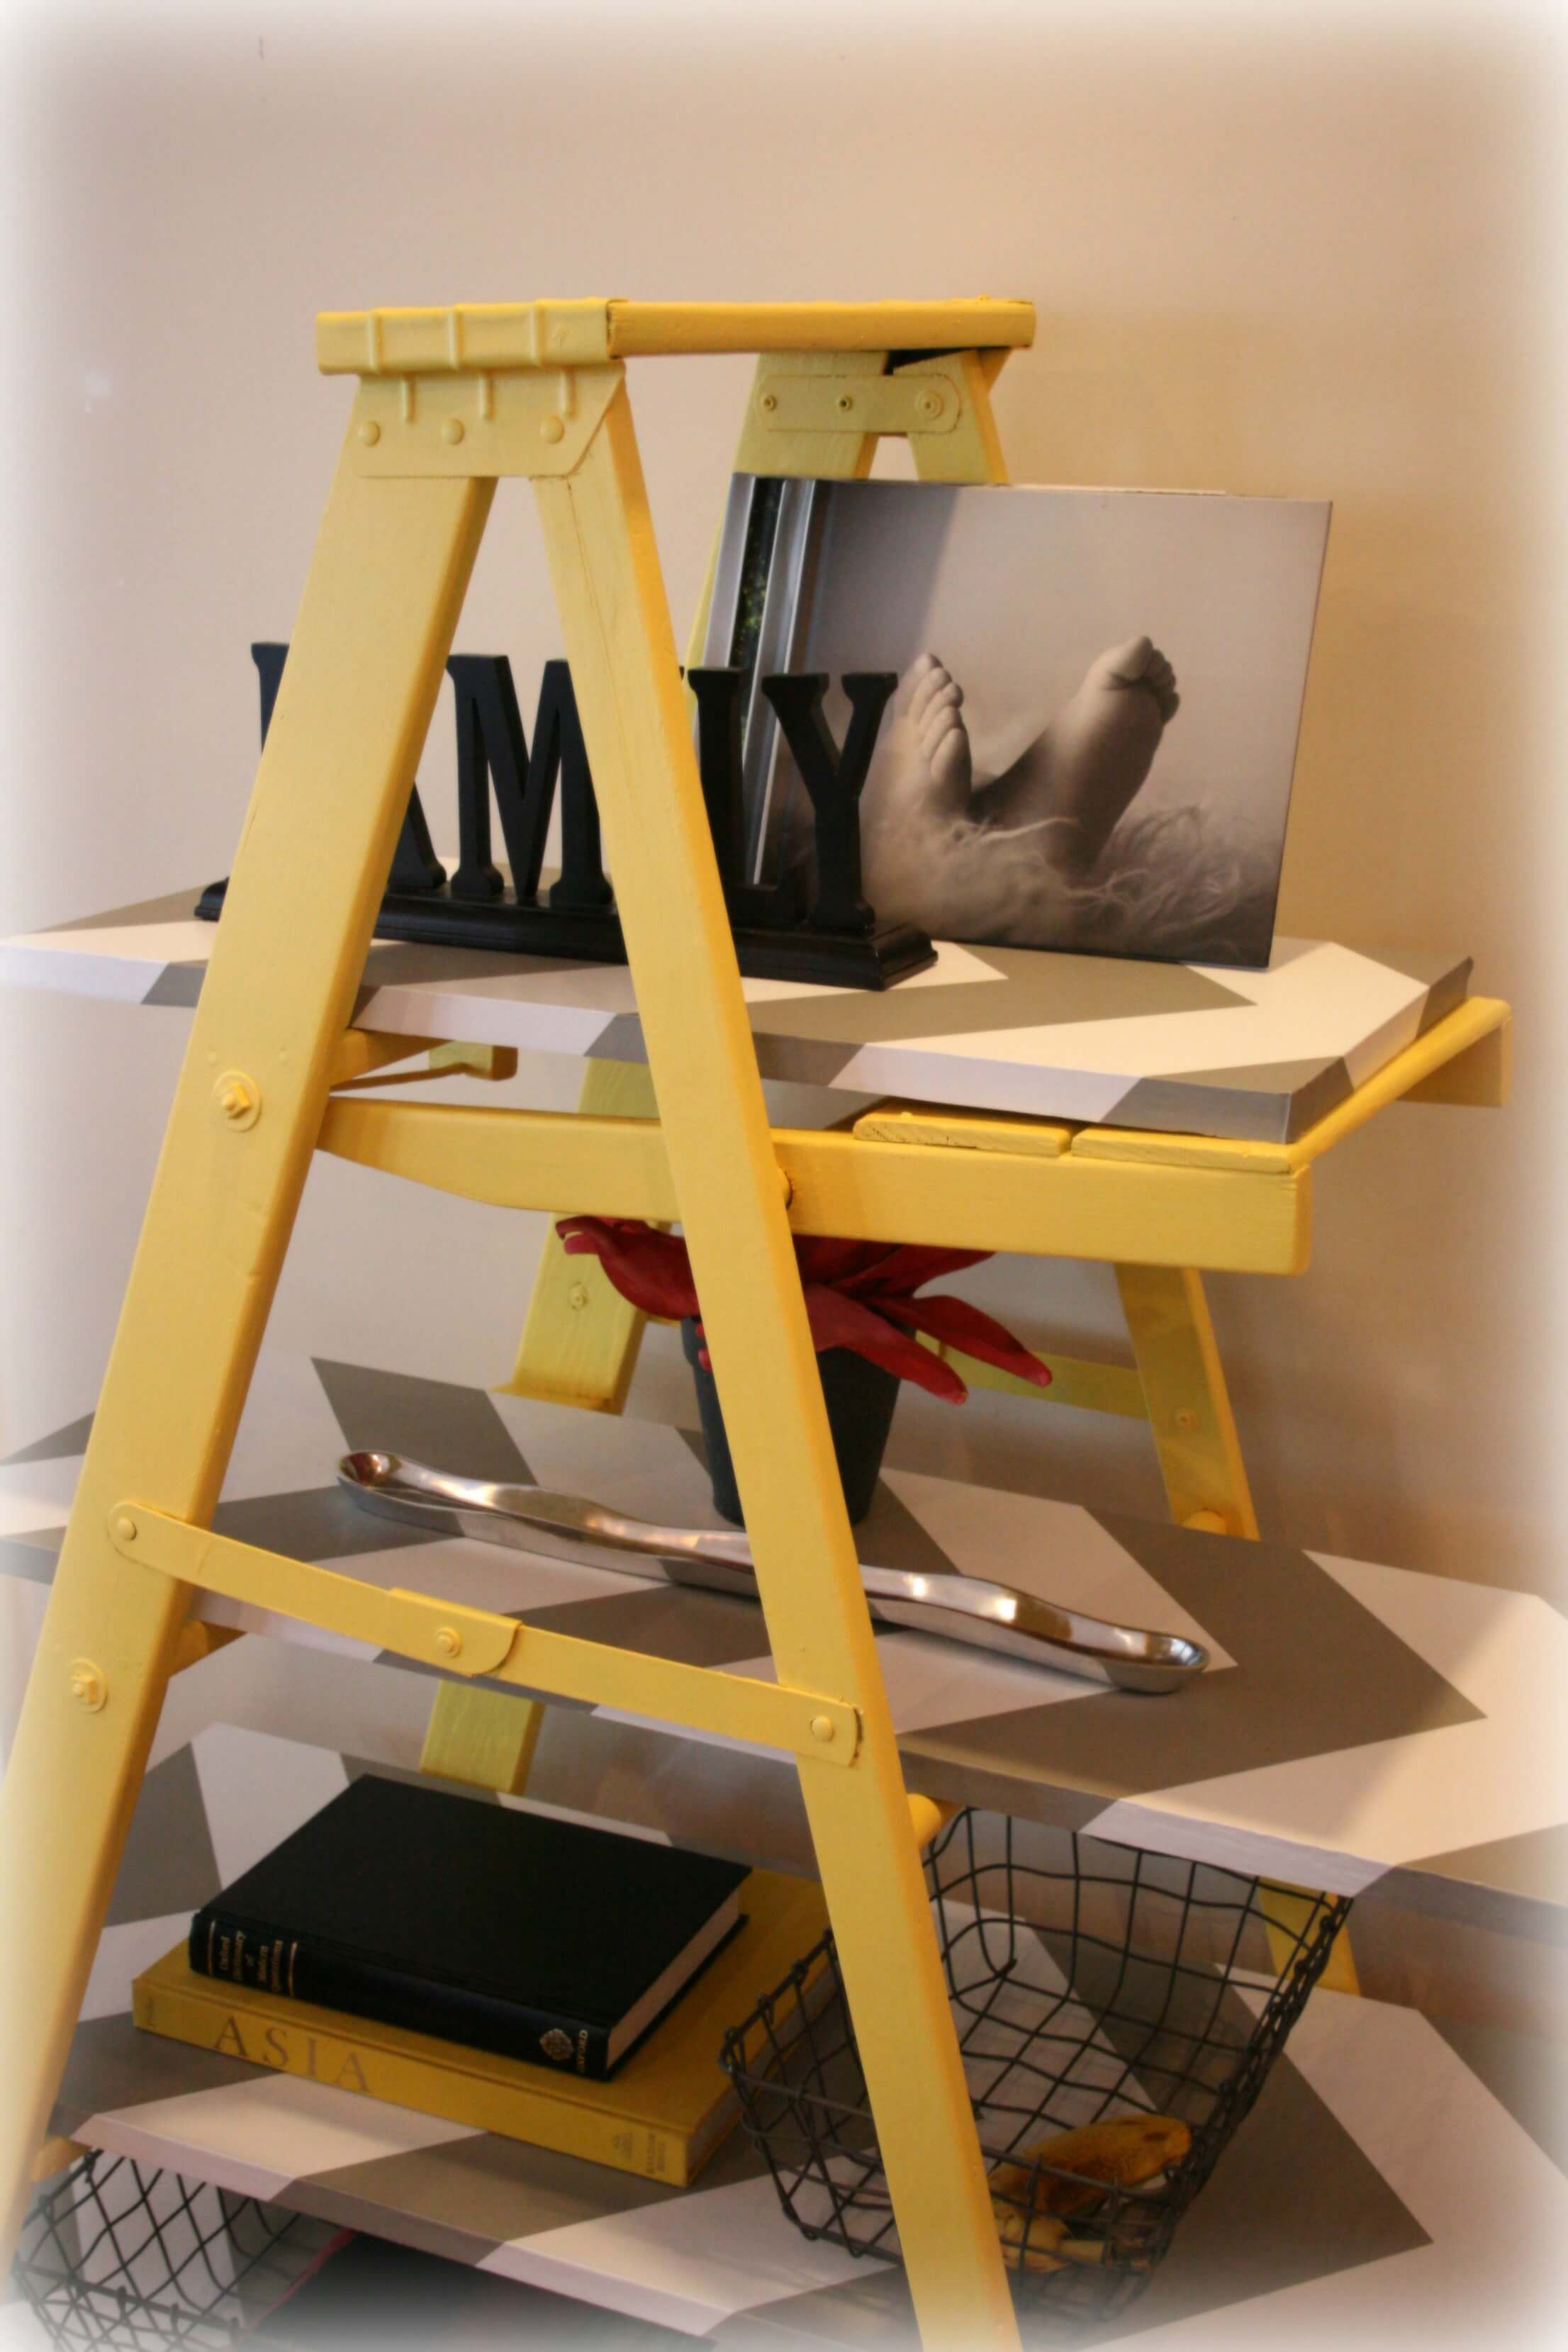 of shelf bookshelf it view s yellow build vintage leaning wooden profile ladder heidi buy or marsh